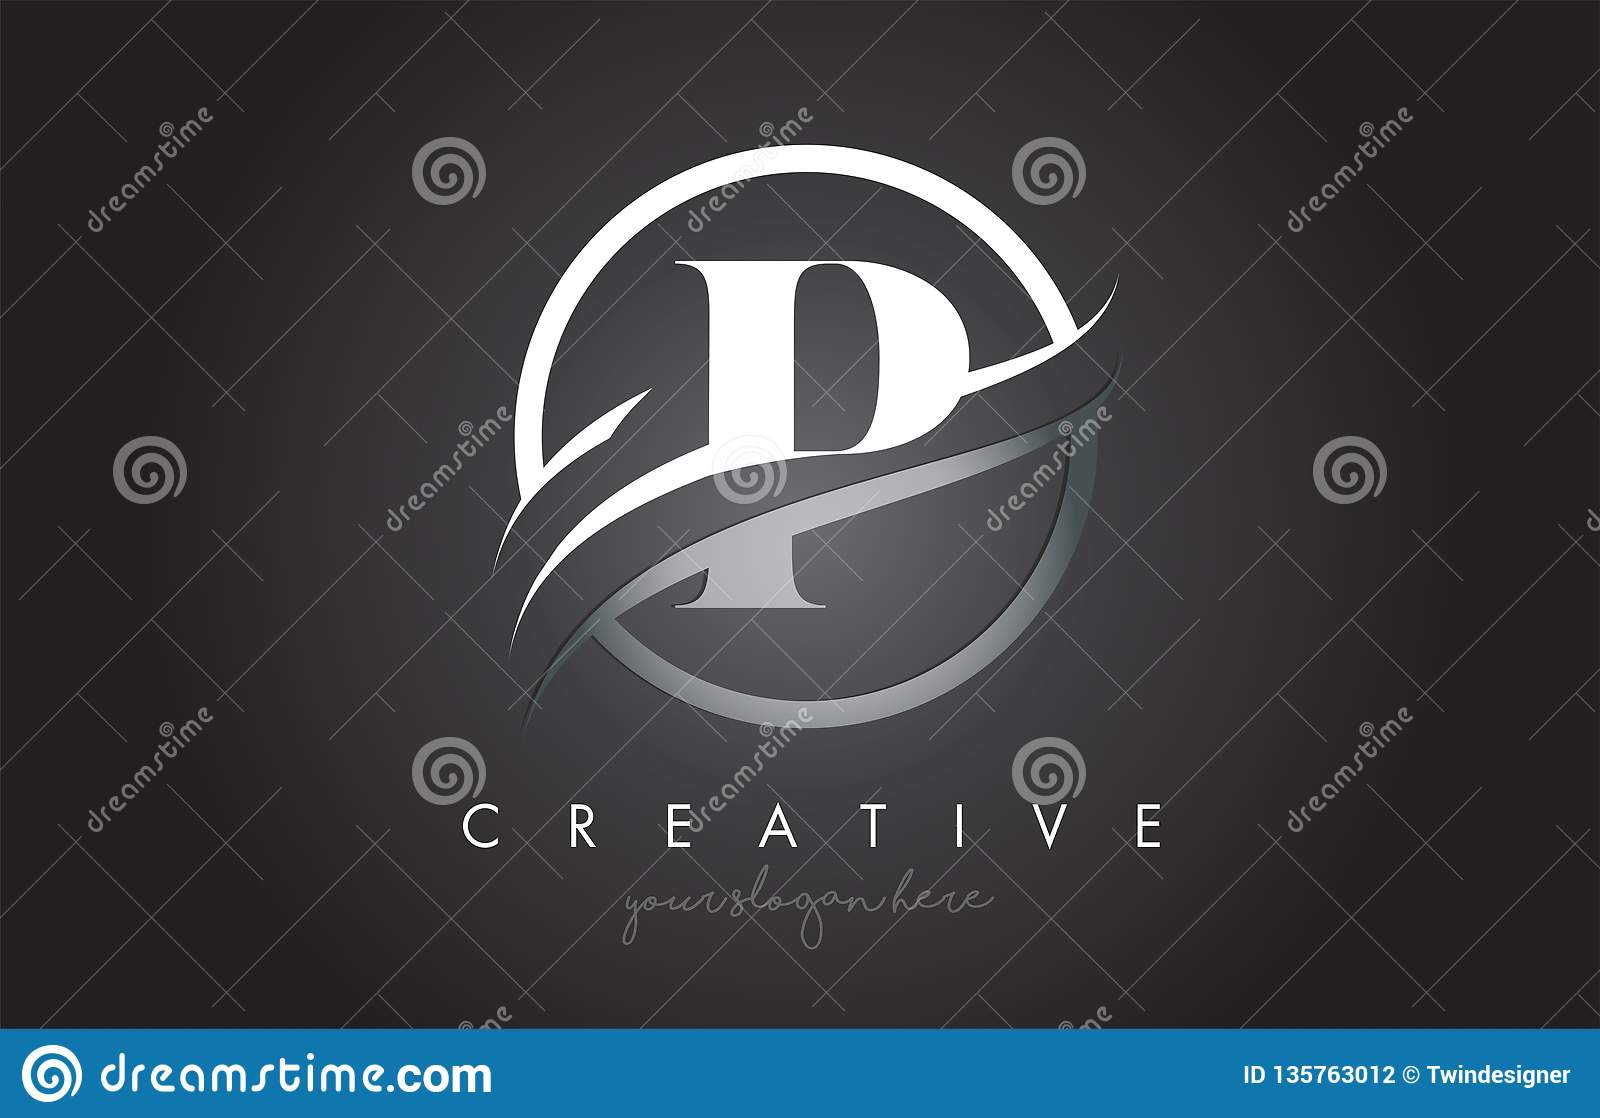 P Letter Logo Design with Circle Steel Swoosh Border and Creative Icon Design